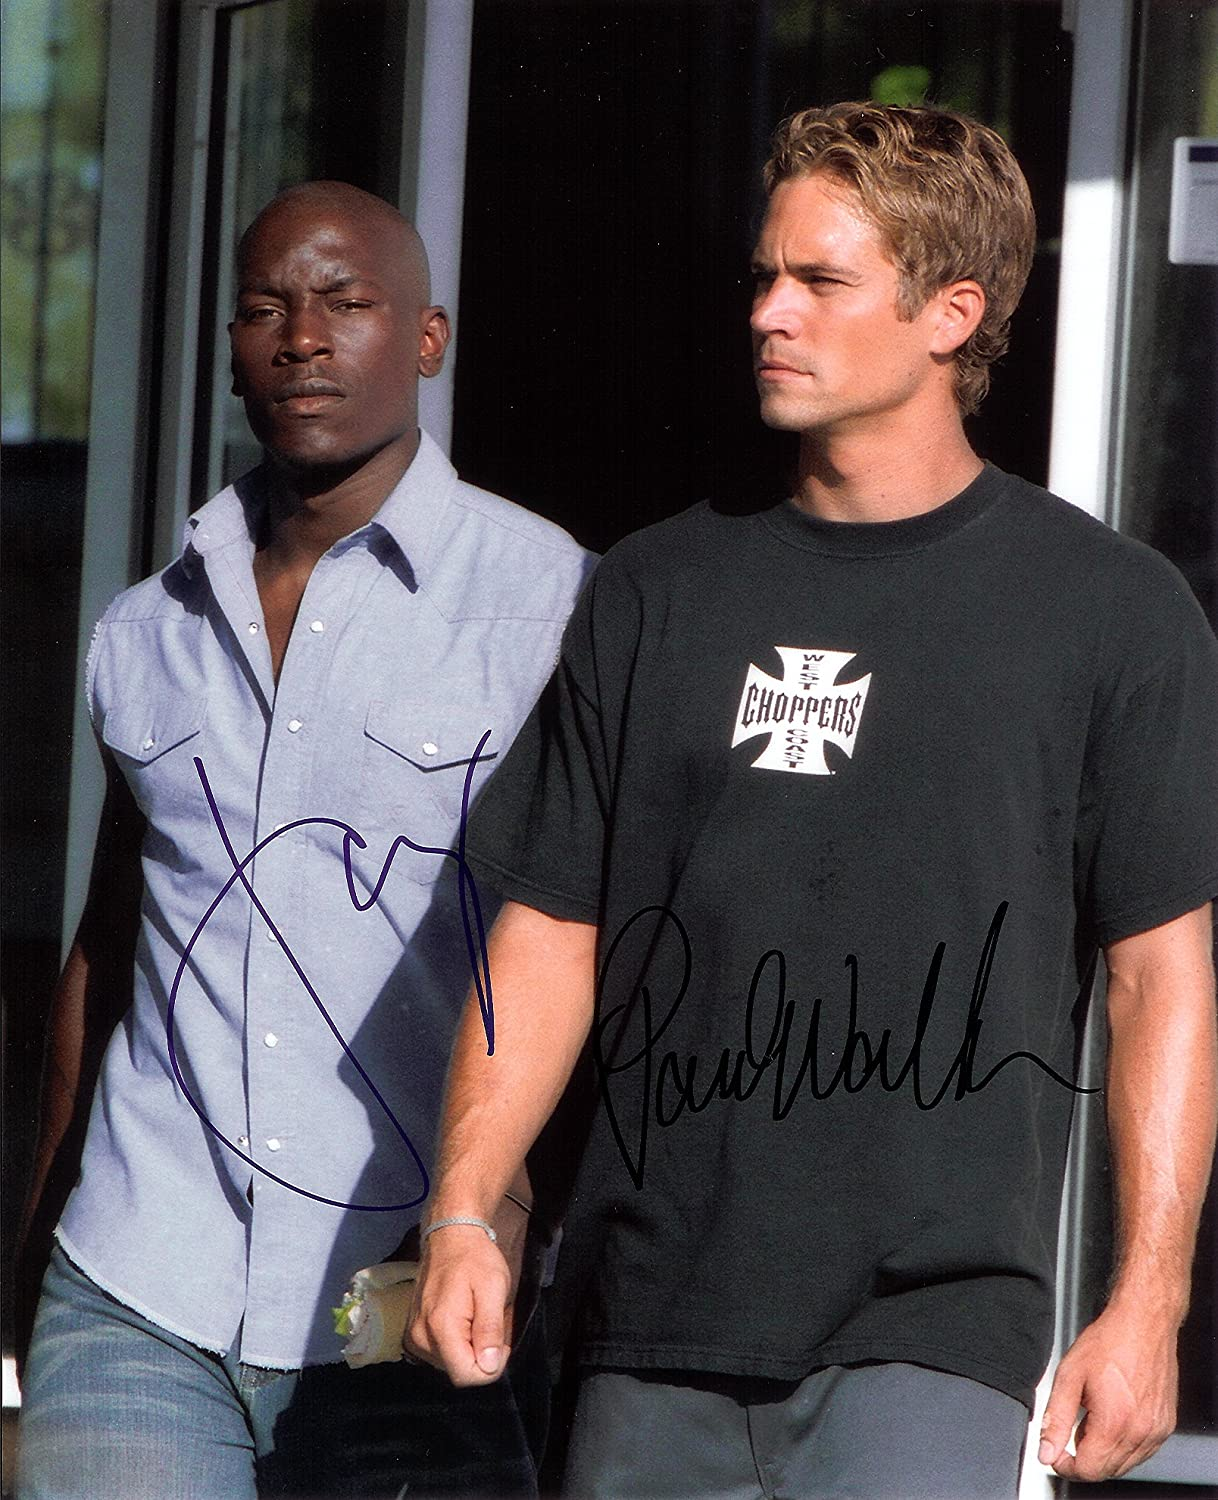 Fast & Furious with Paul Walker Signed Autographed 8 X 10 RP Photo - Mint Condition